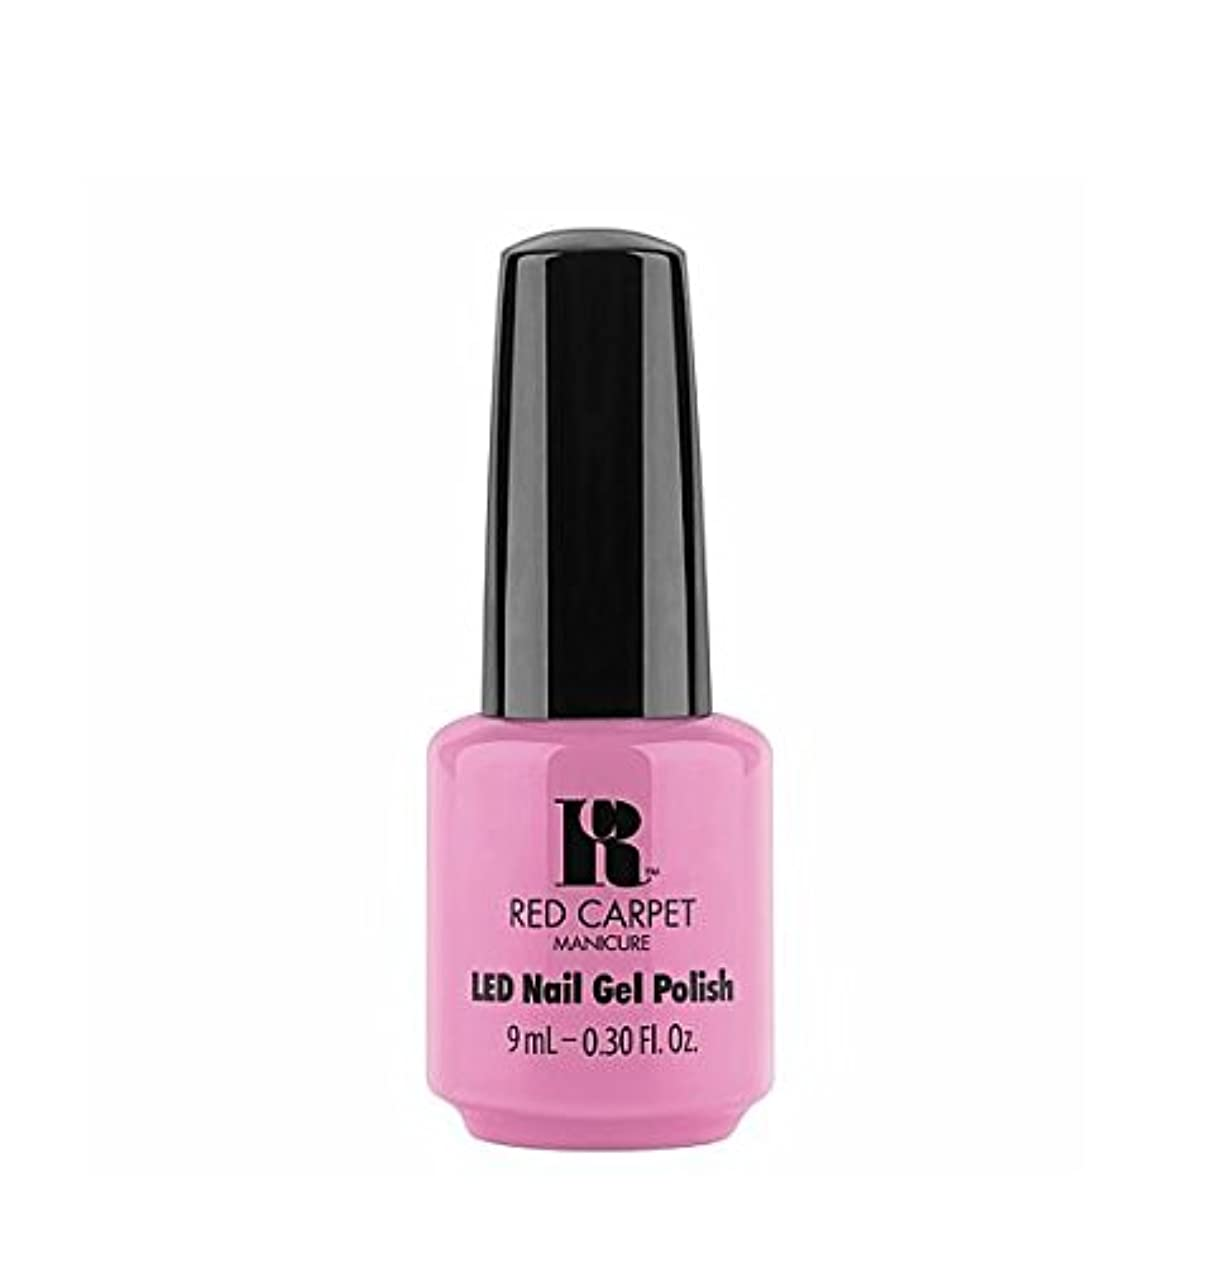 Red Carpet Manicure LED Gel Polish - Platform Pop - 9 ml / 0.30 oz